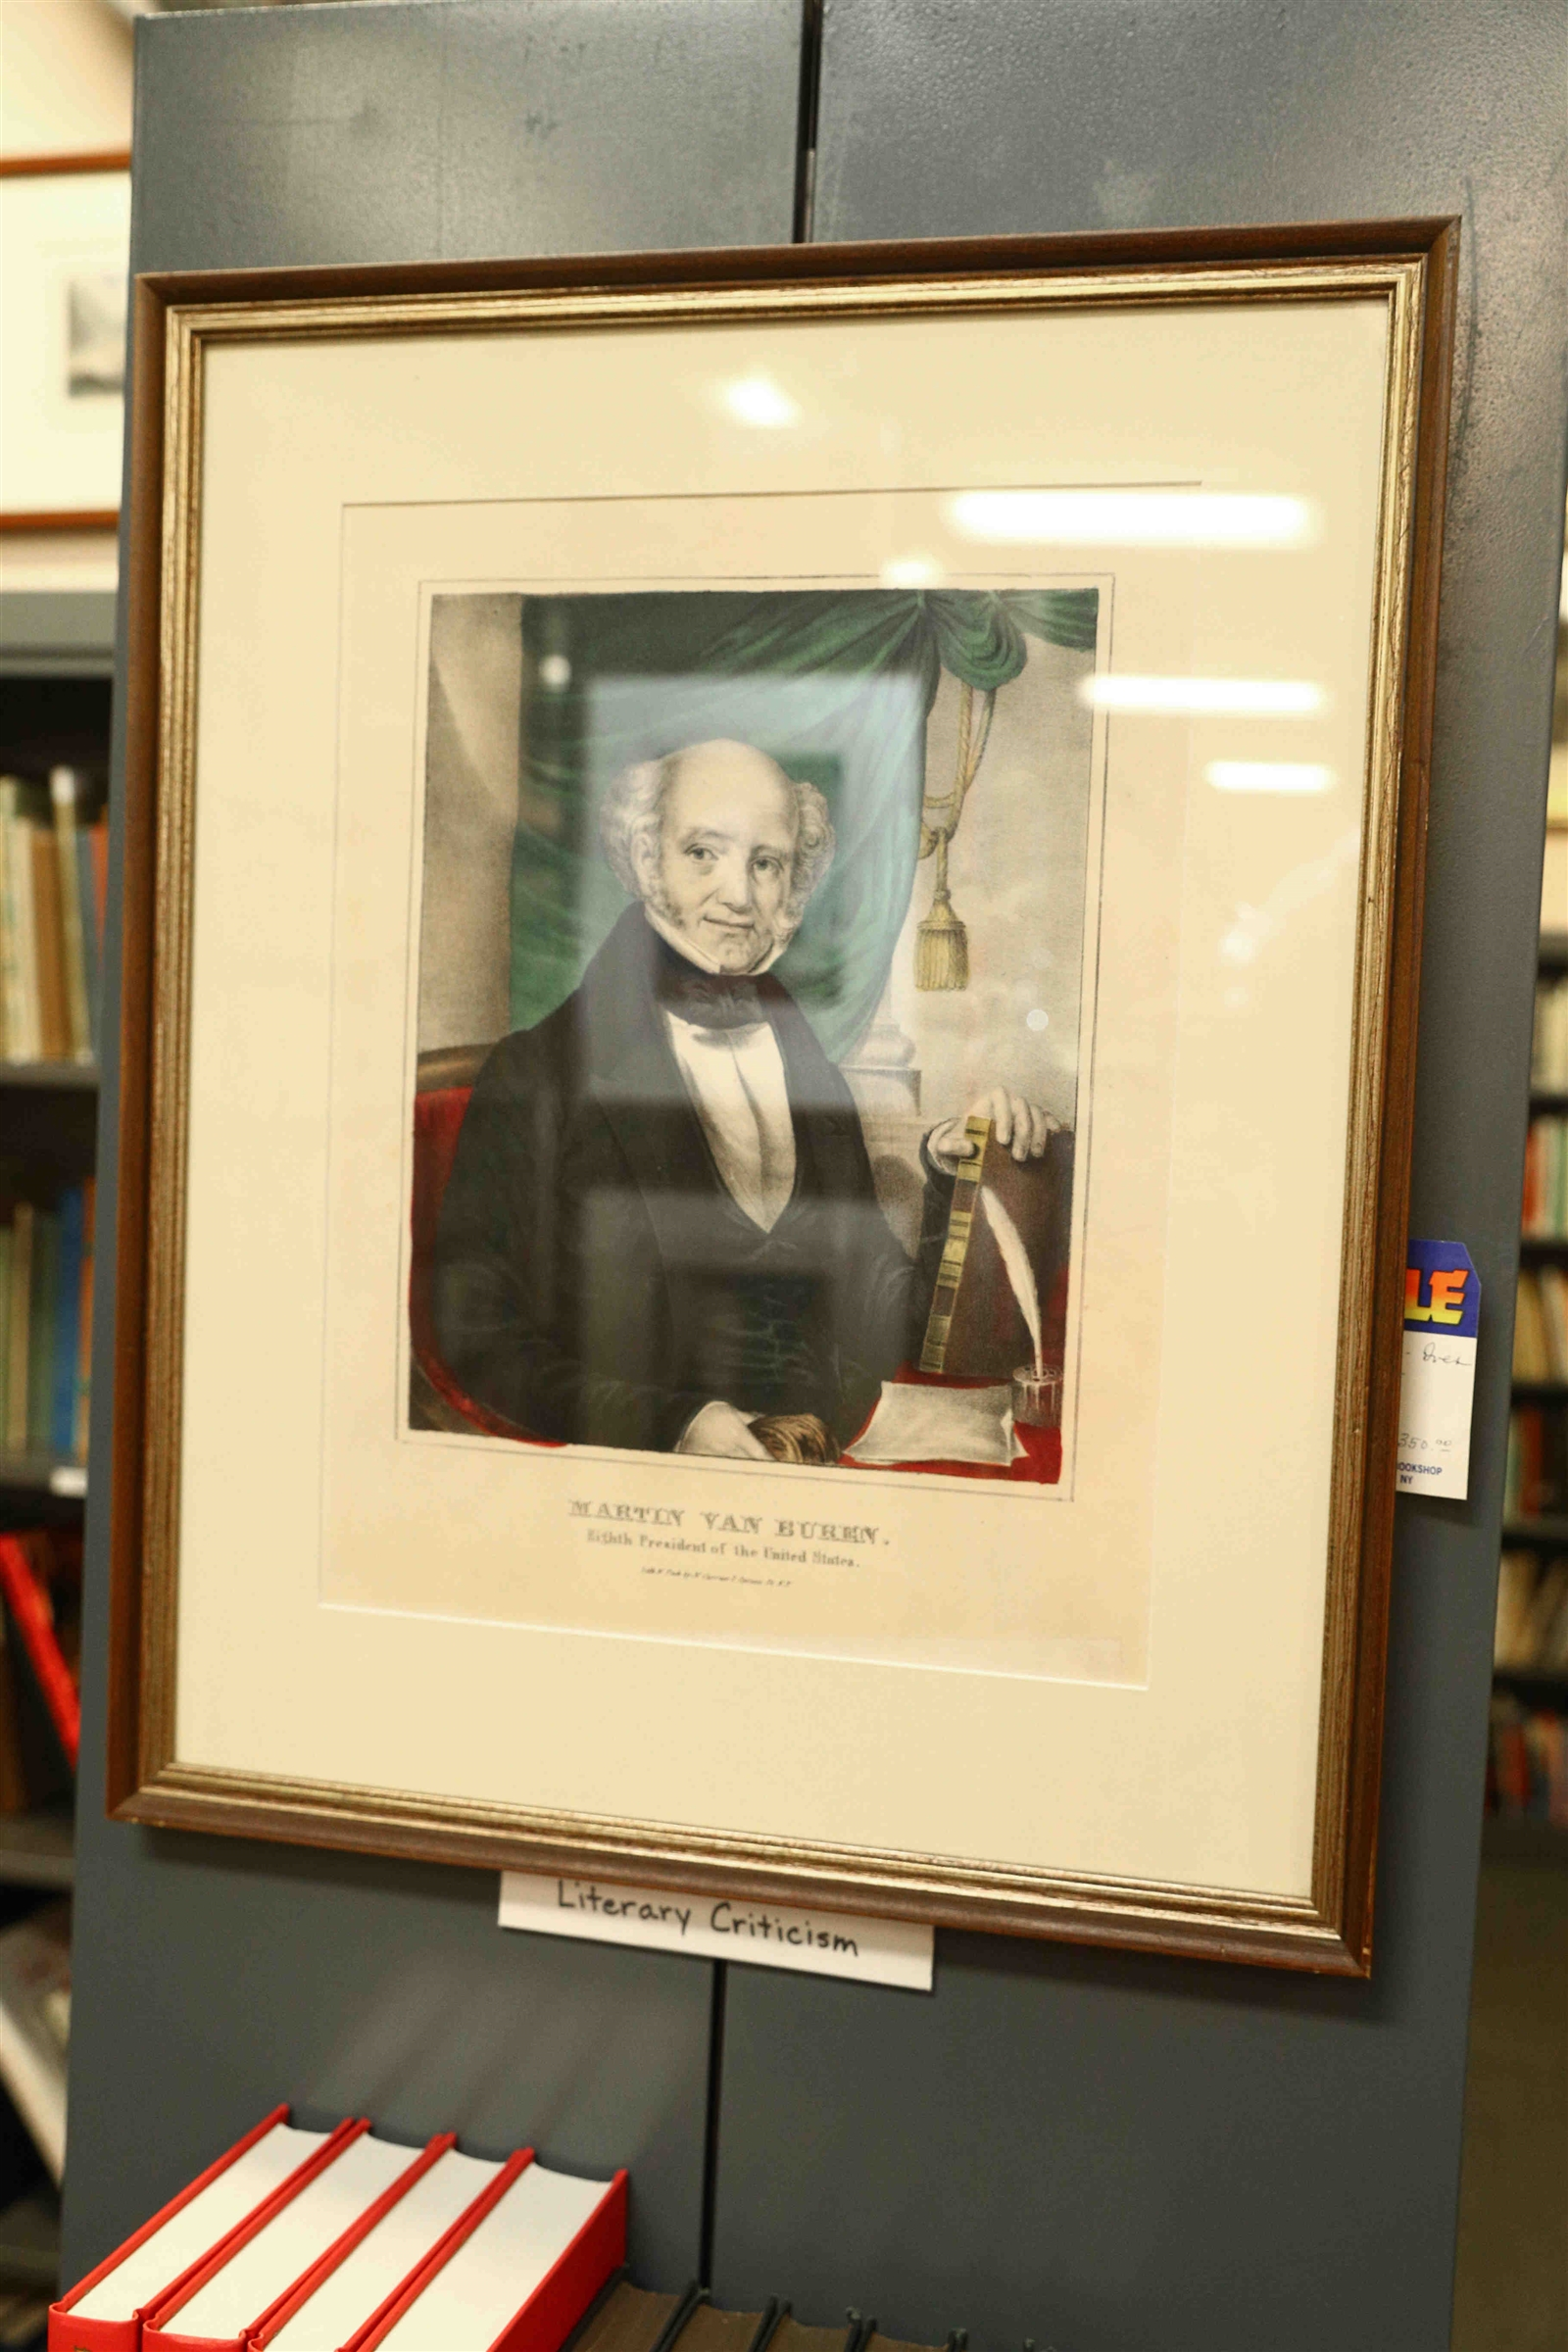 A Currier and Ives of Martin Van Buren at the Old Editions Book Shop.